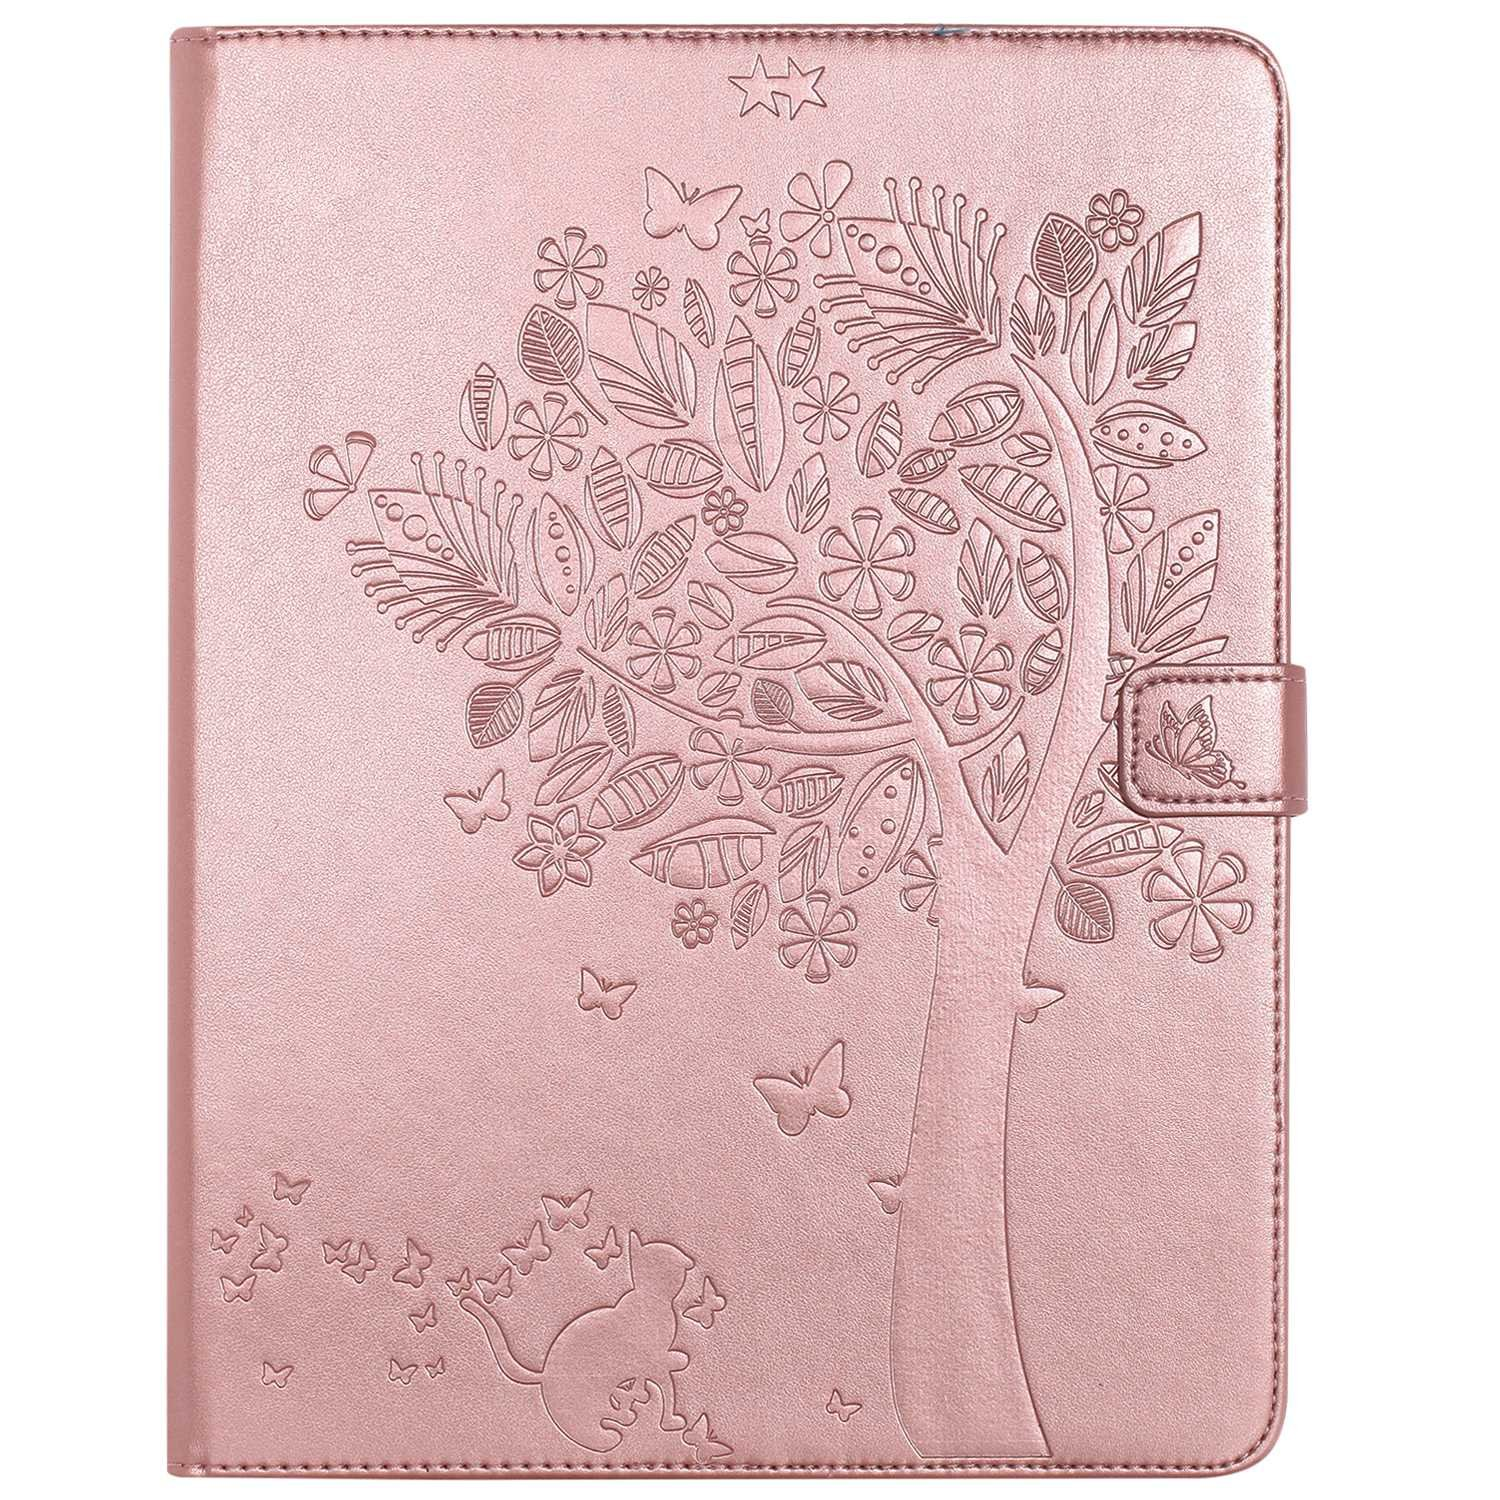 Bear Village iPad 2nd / 3rd / 4th Generation 9.7 Inch Case, Leather Magnetic Case, Fullbody Protective Cover with Stand Function for Apple iPad 2nd / 3rd / 4th Generation 9.7 Inch, Rose Gold by Bear Village